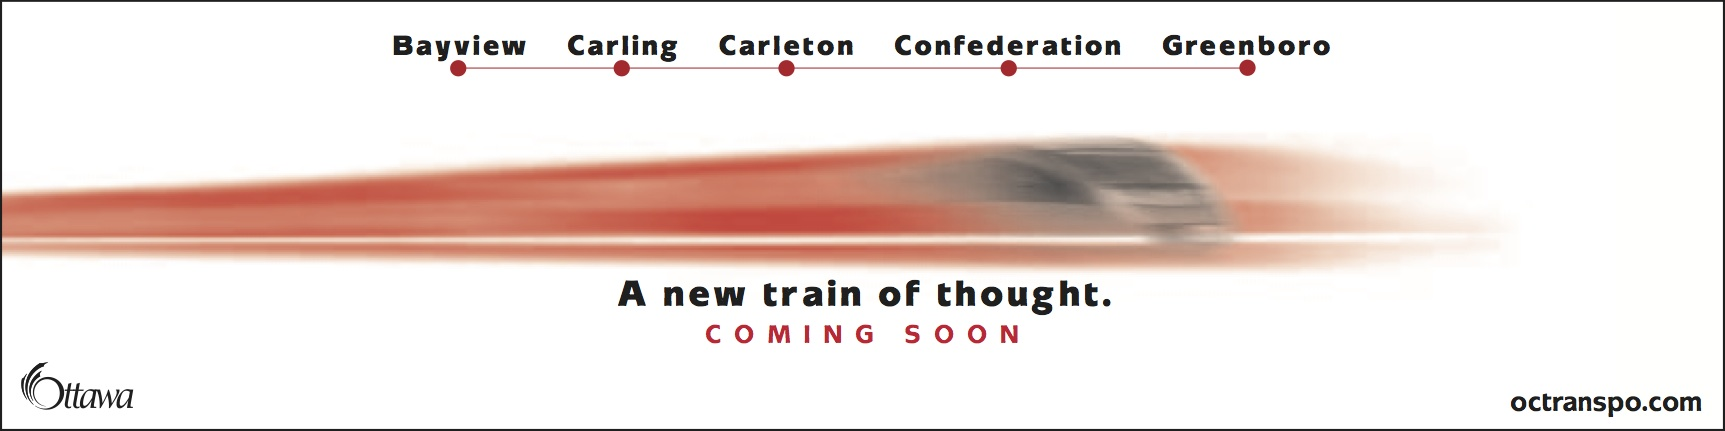 O-Train teaser ad: A new train of thought""